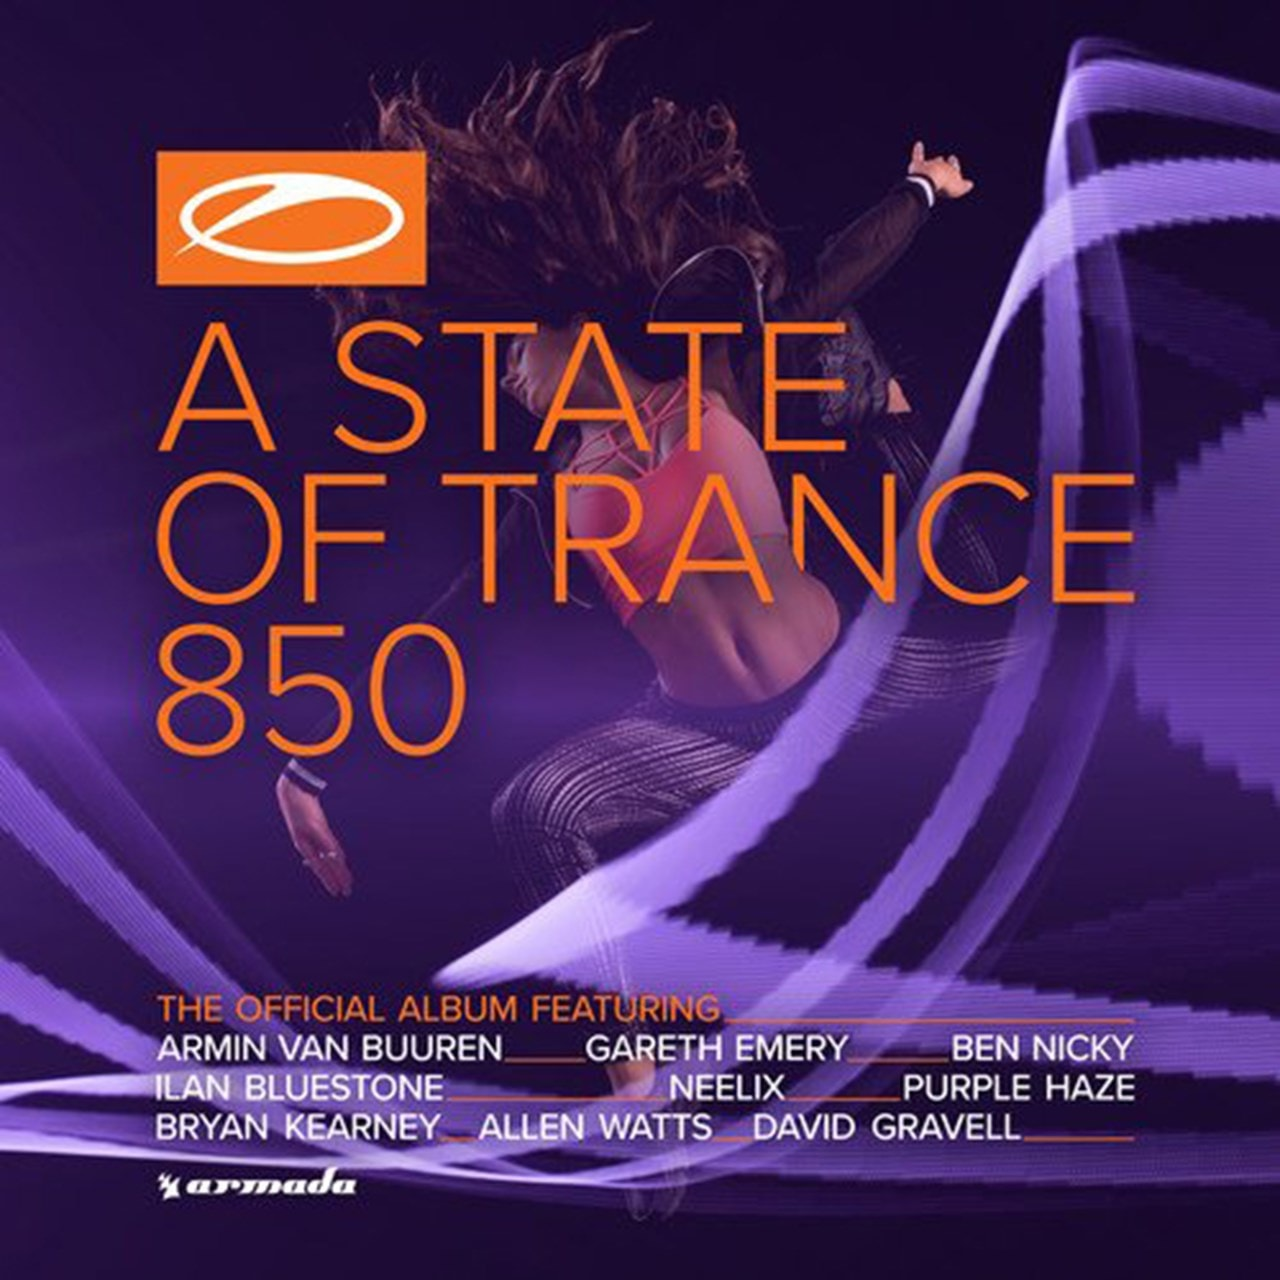 A State of Trance 850 - 1